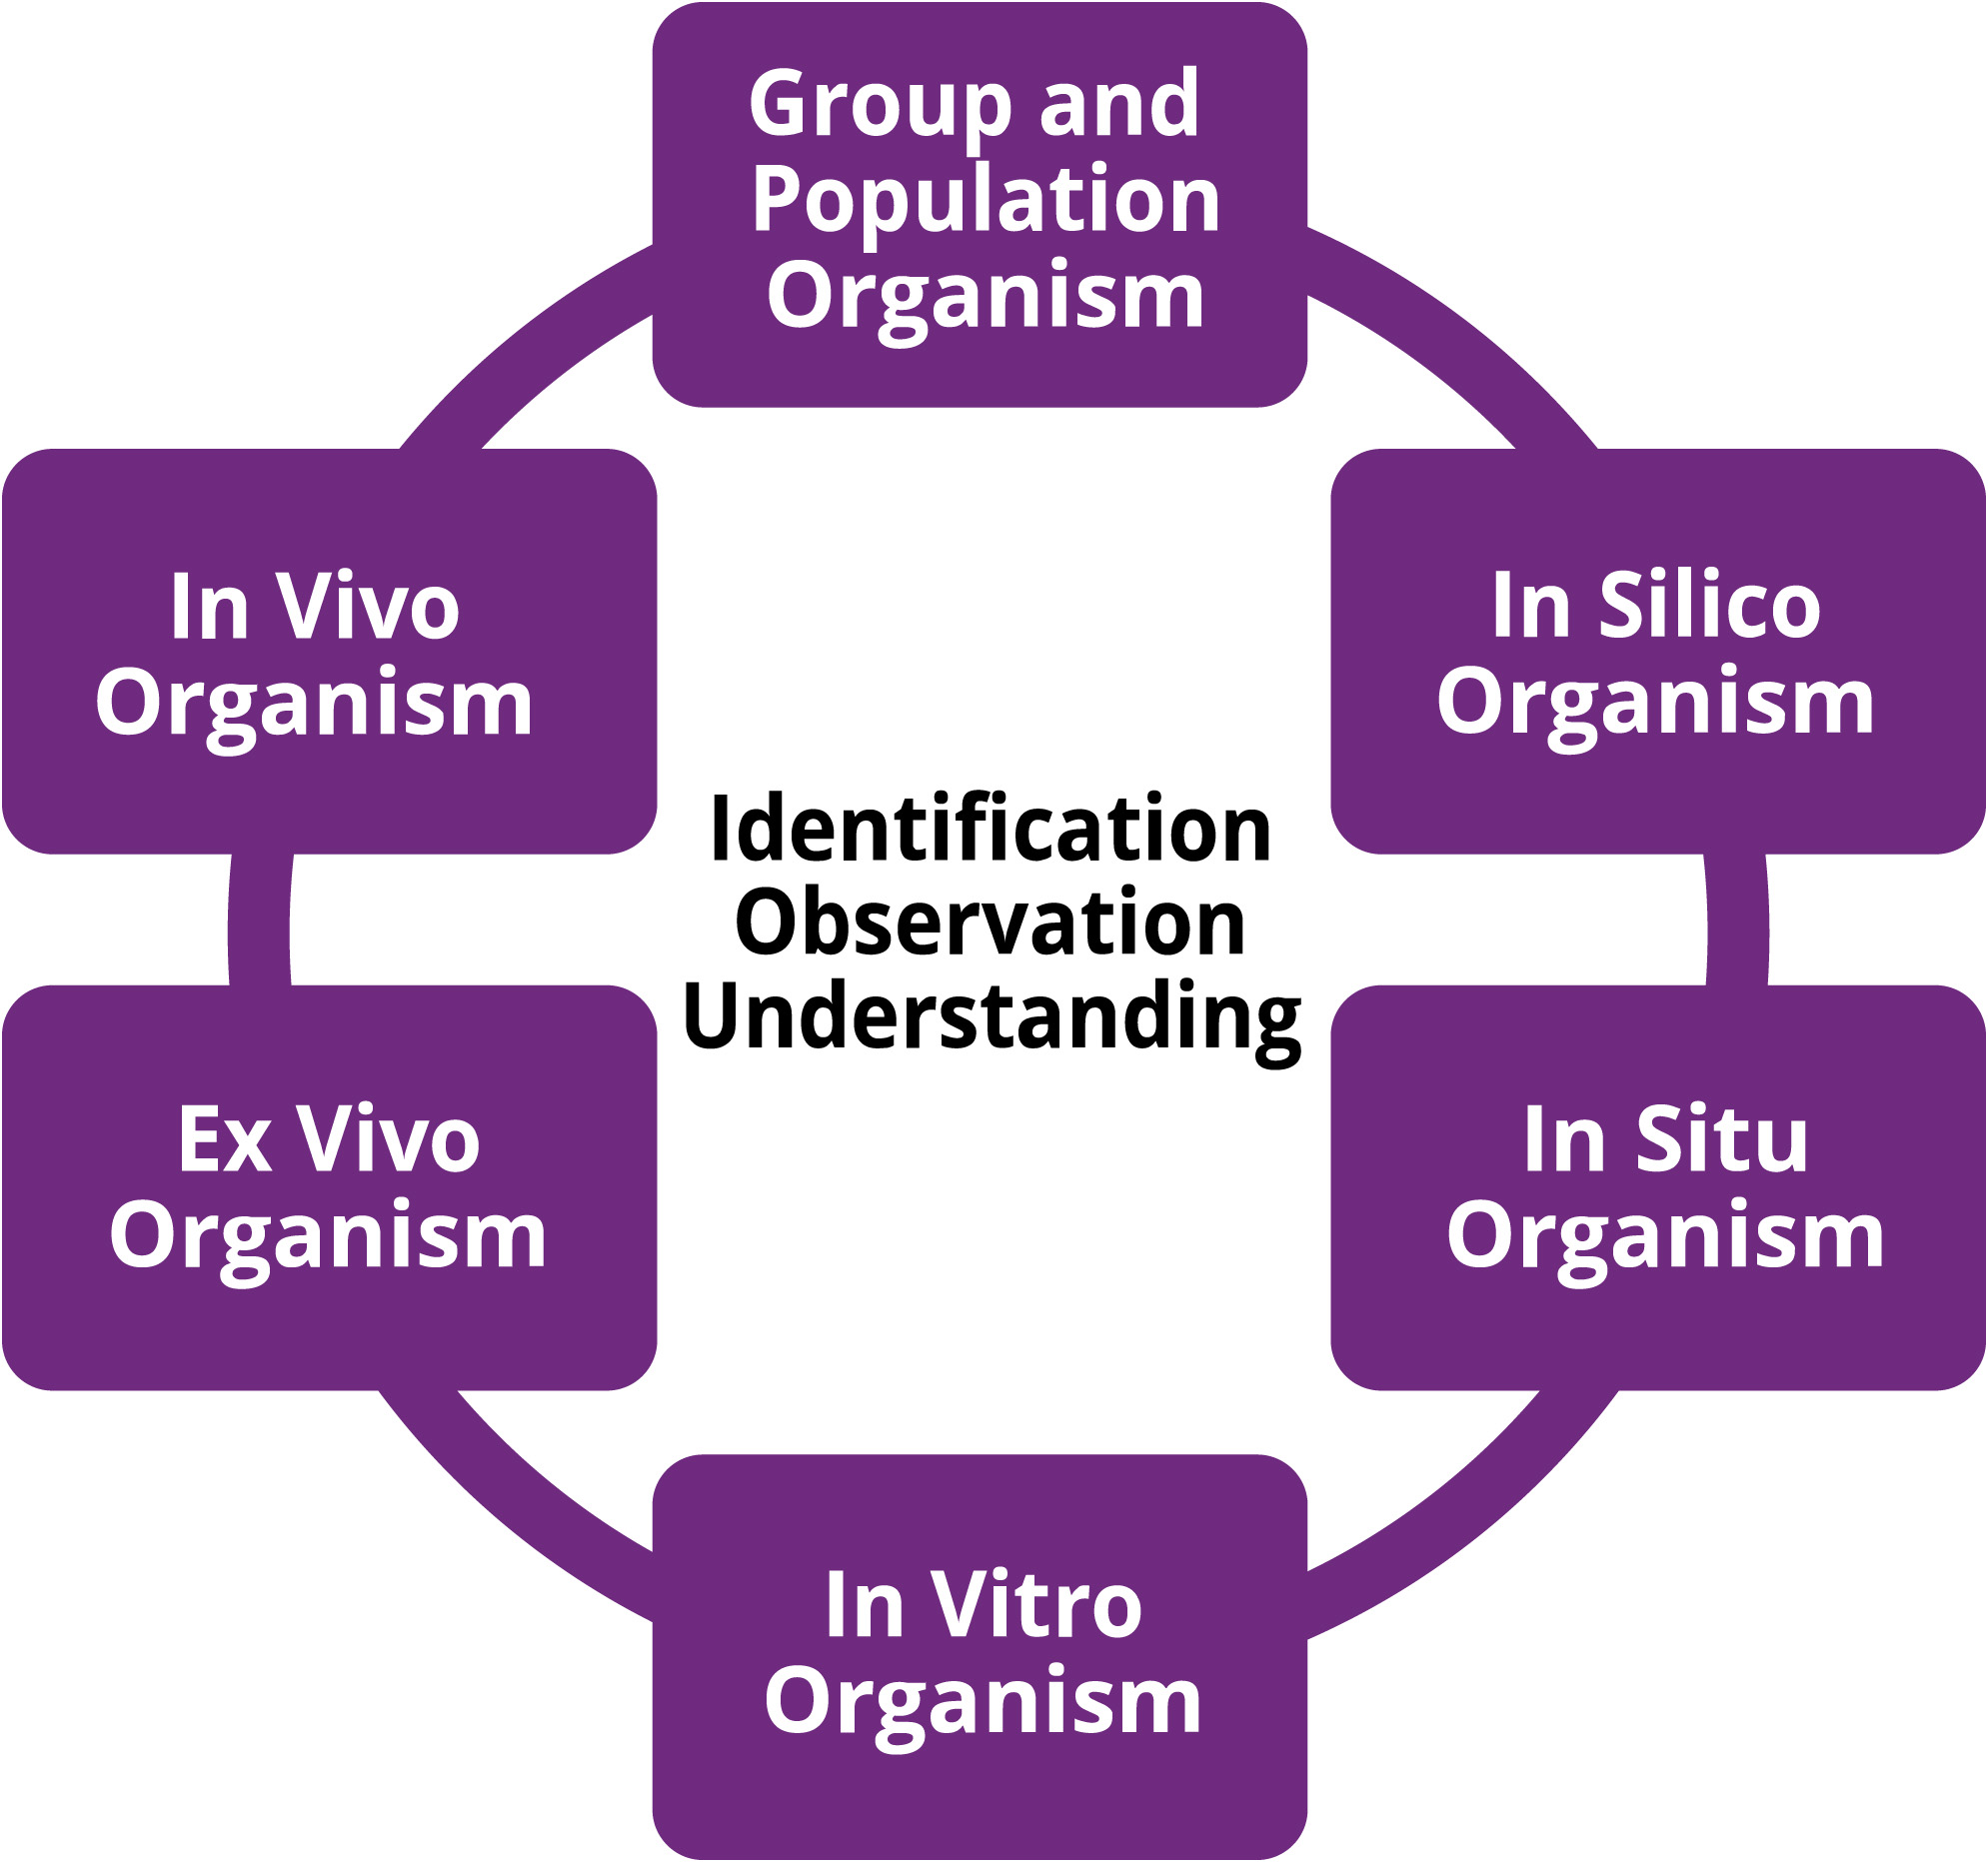 This Fundamental Questions ring is represented by a purple ring and includes six types of experimental settings in which environmental health researchers tend to conduct their work. These settings include in vitro, ex vivo, in vivo, in silico and in situ. The last setting is group or population, which would include epidemiological type research.